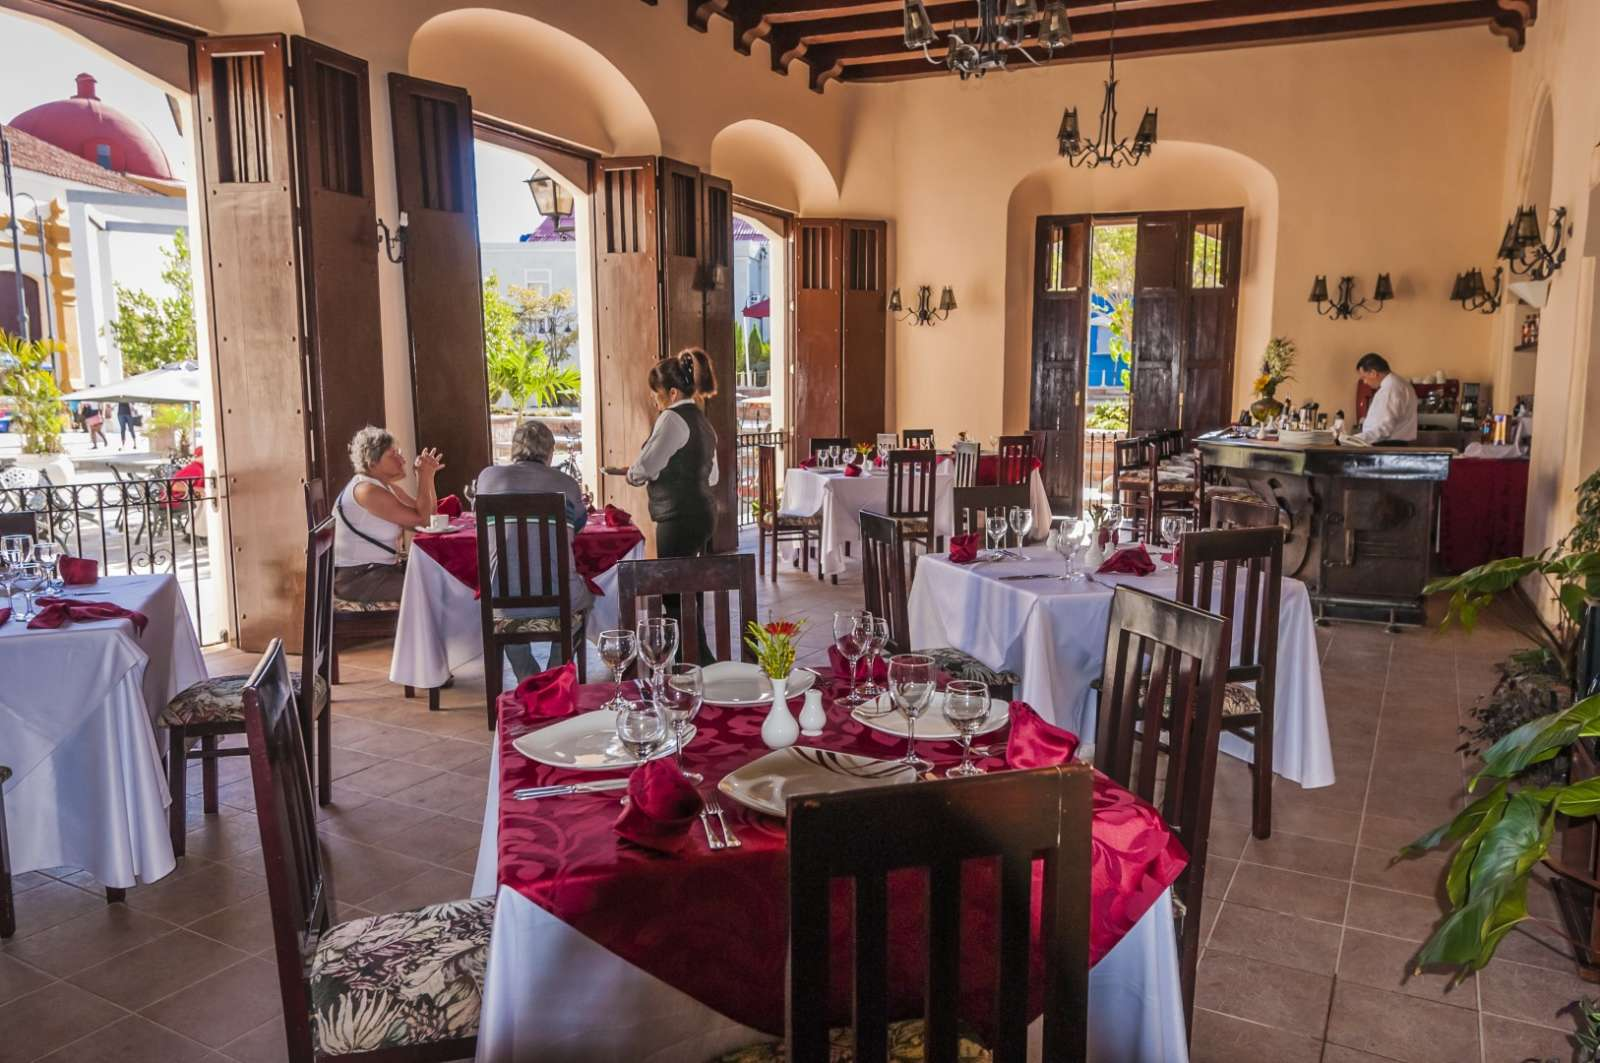 Restaurant at Camino de Hierro